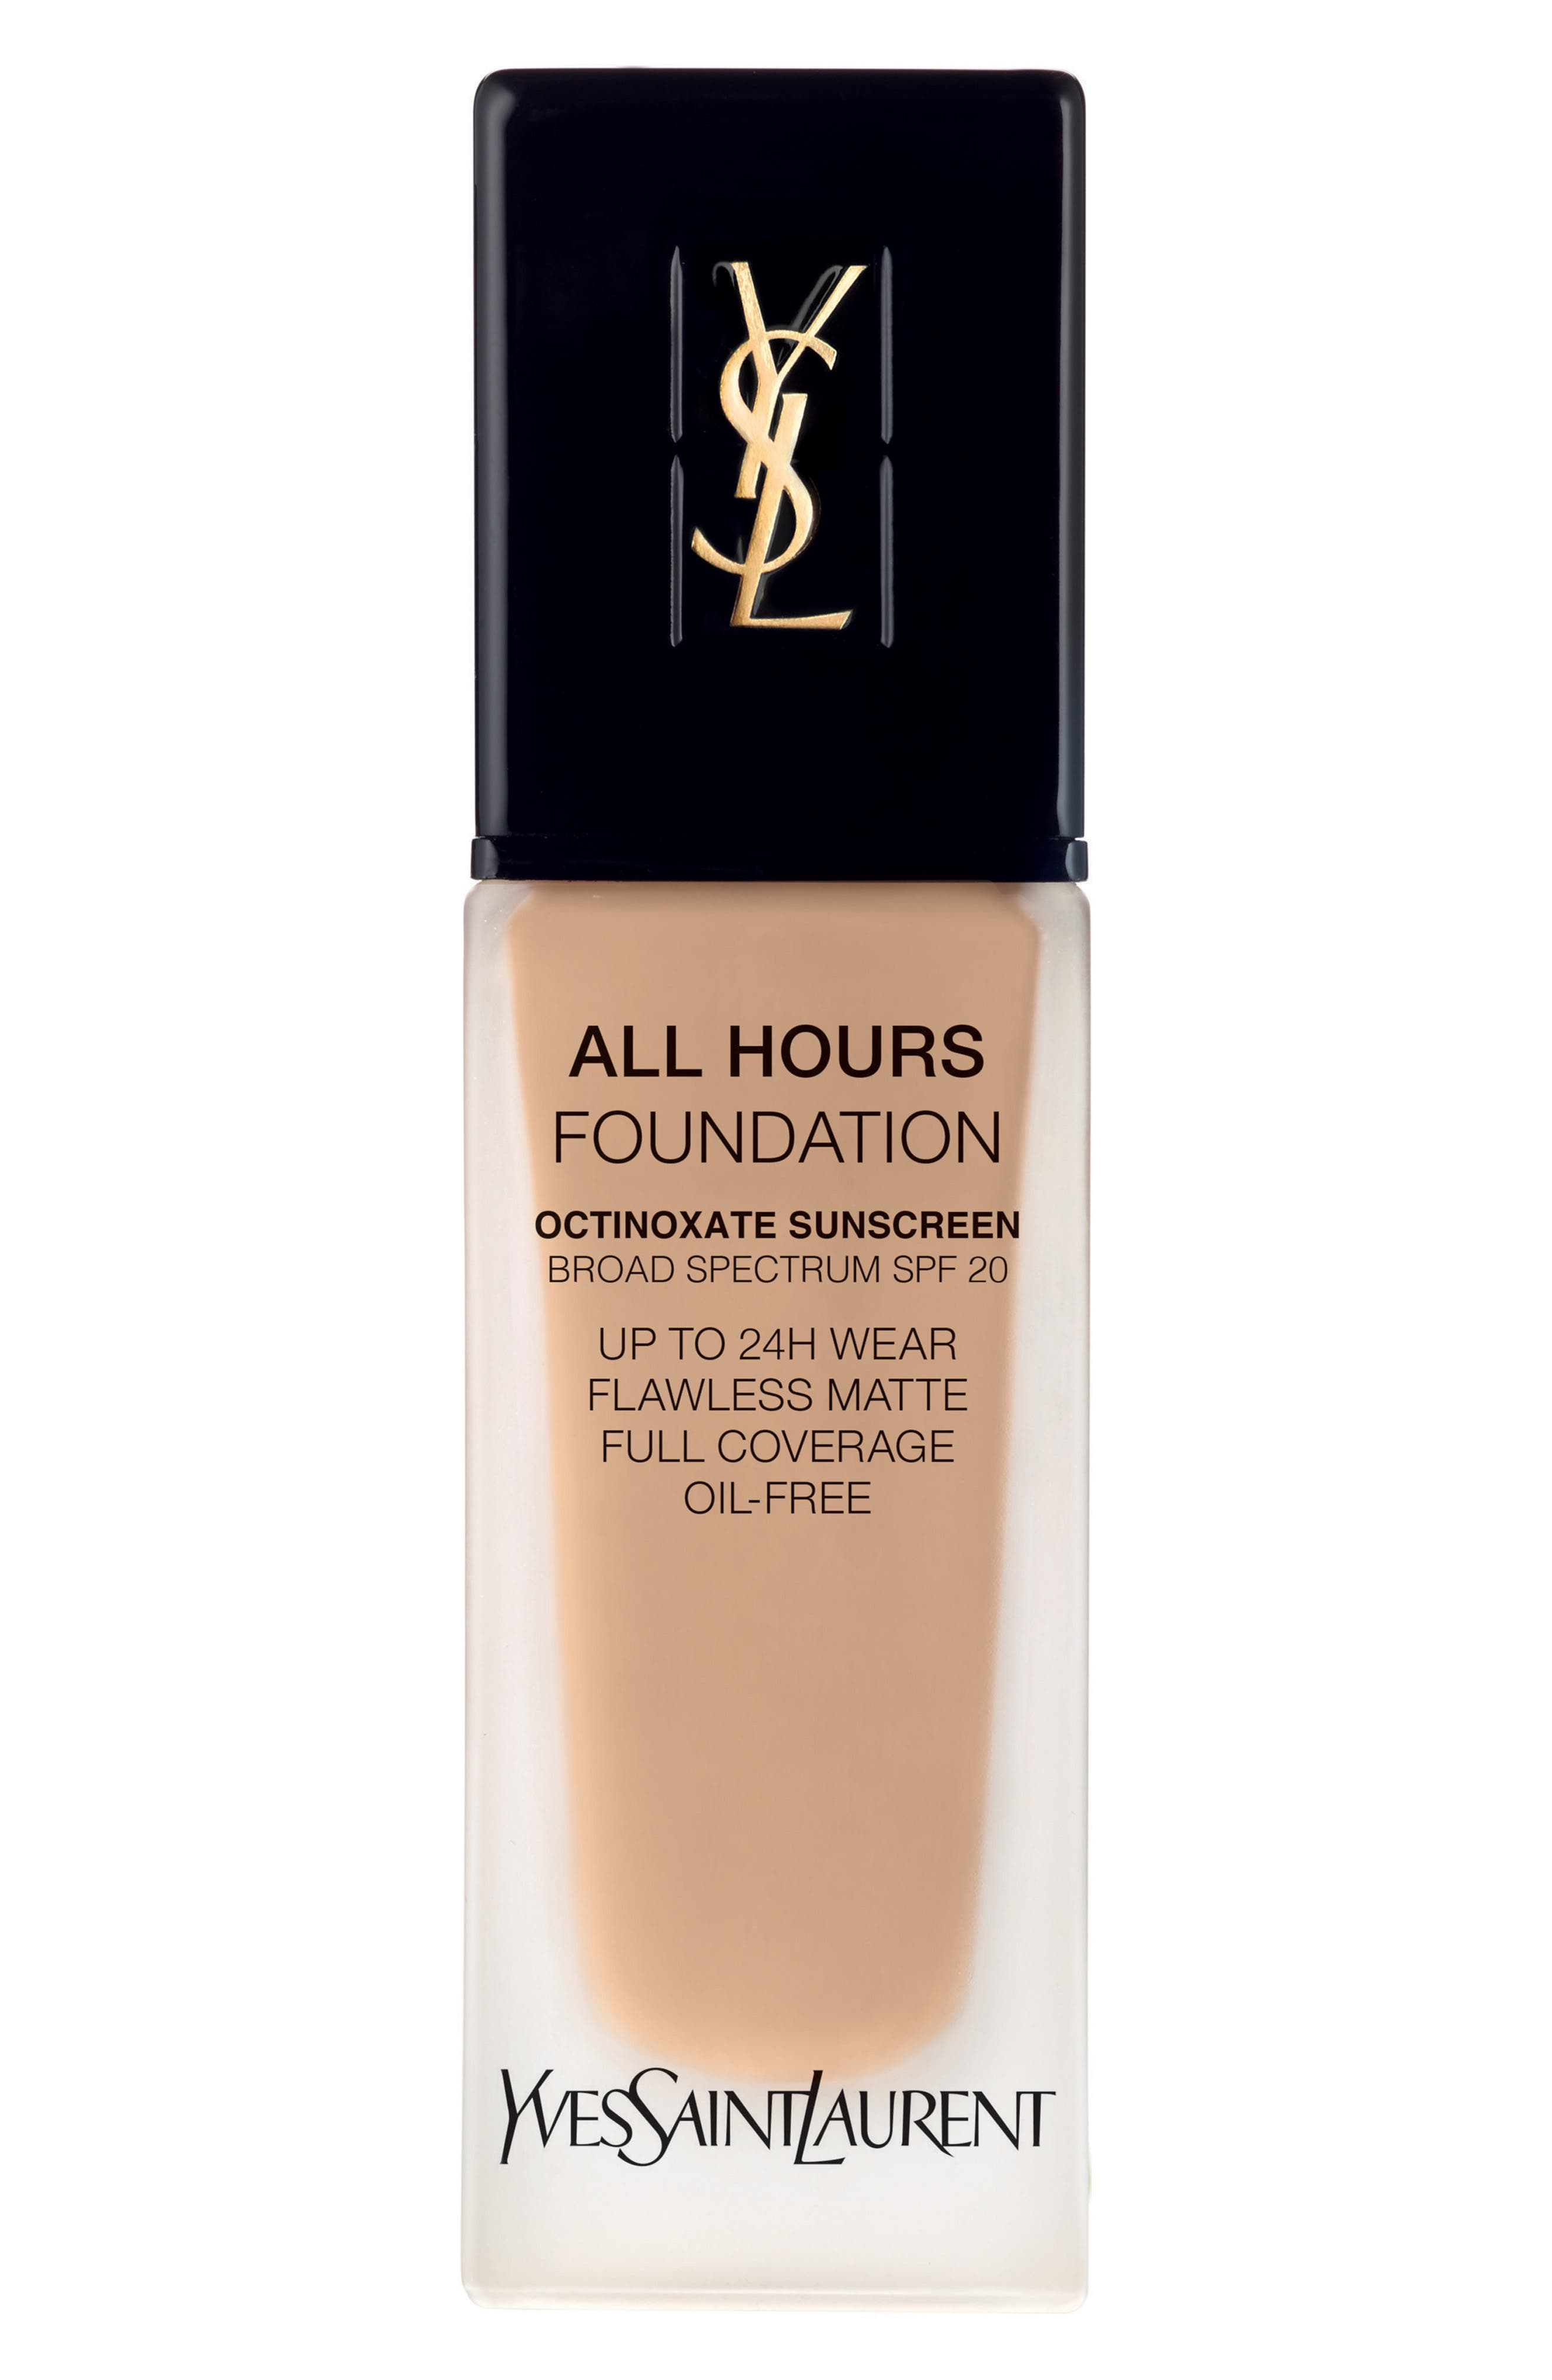 Yves Saint Laurent All Hours Full Coverage Matte Foundation Spf 20 - Bd30 Warm Almond